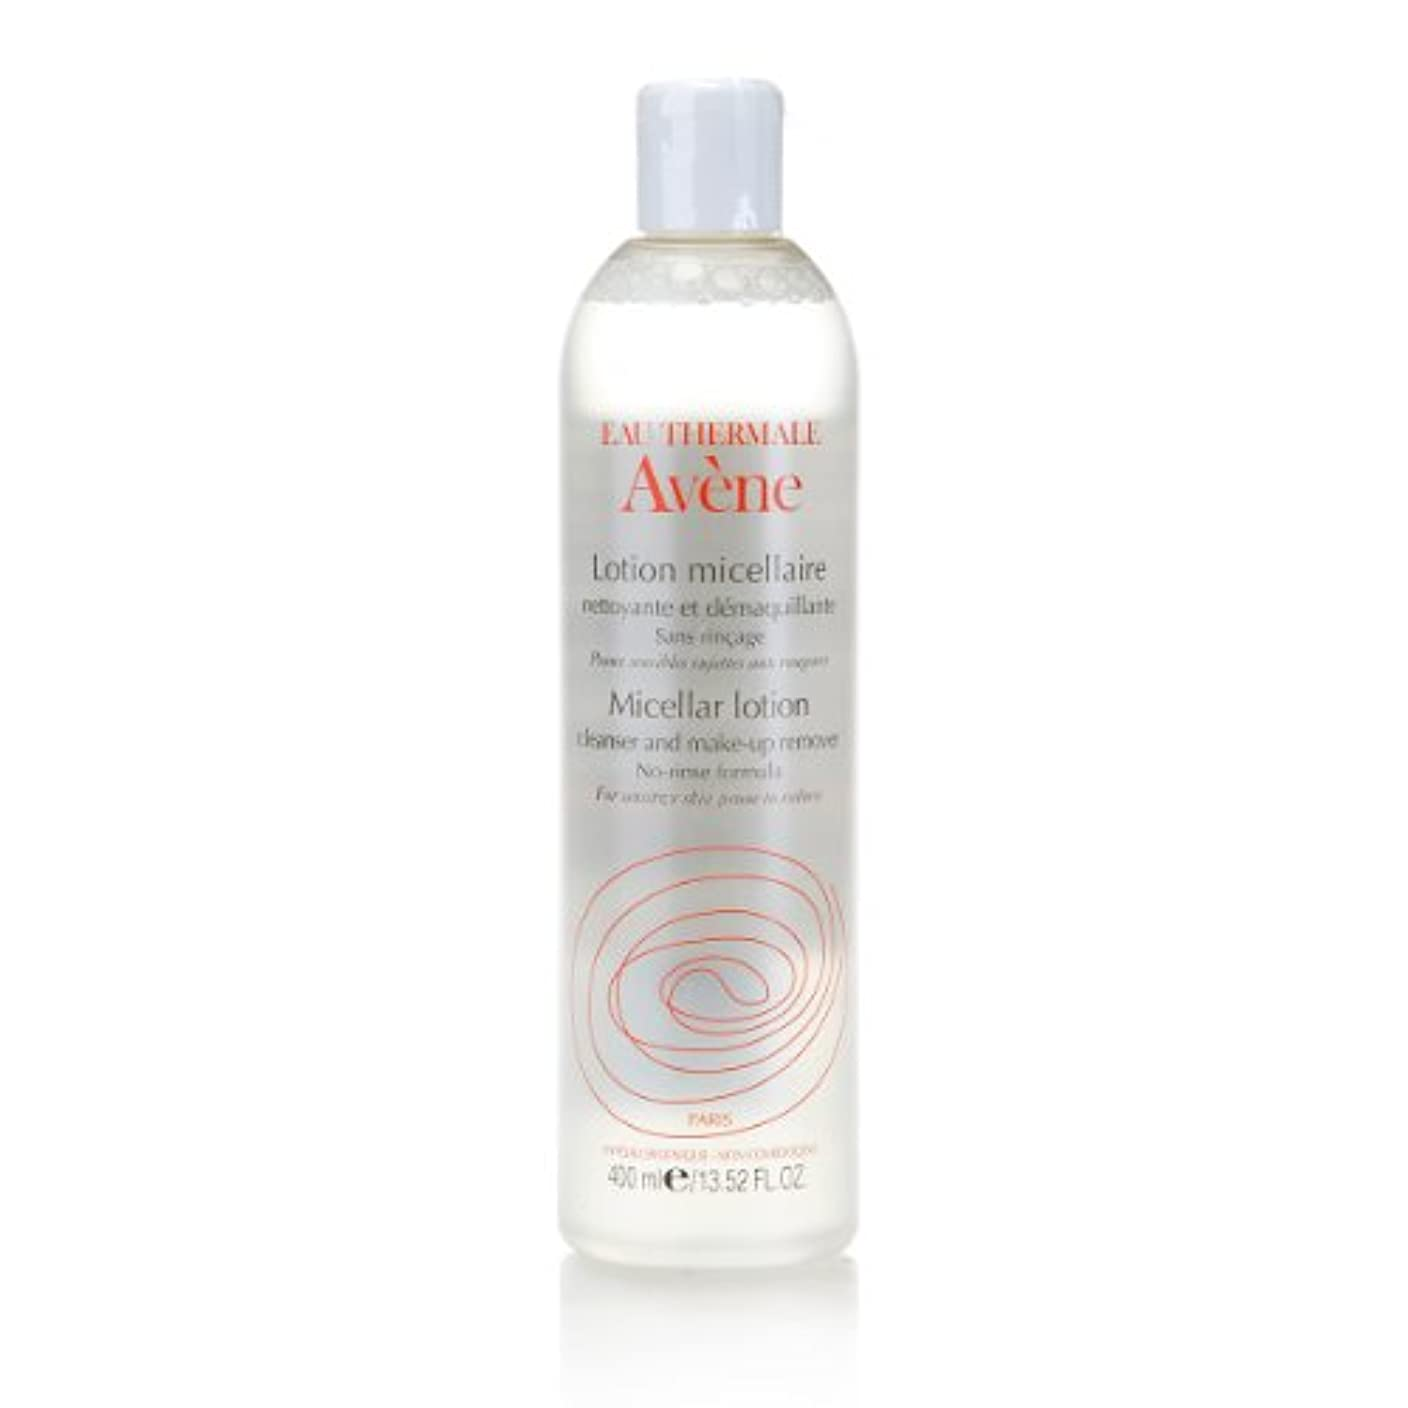 Avene Micellar Lotion Cleanser And Make-up Remover 400ml [並行輸入品]